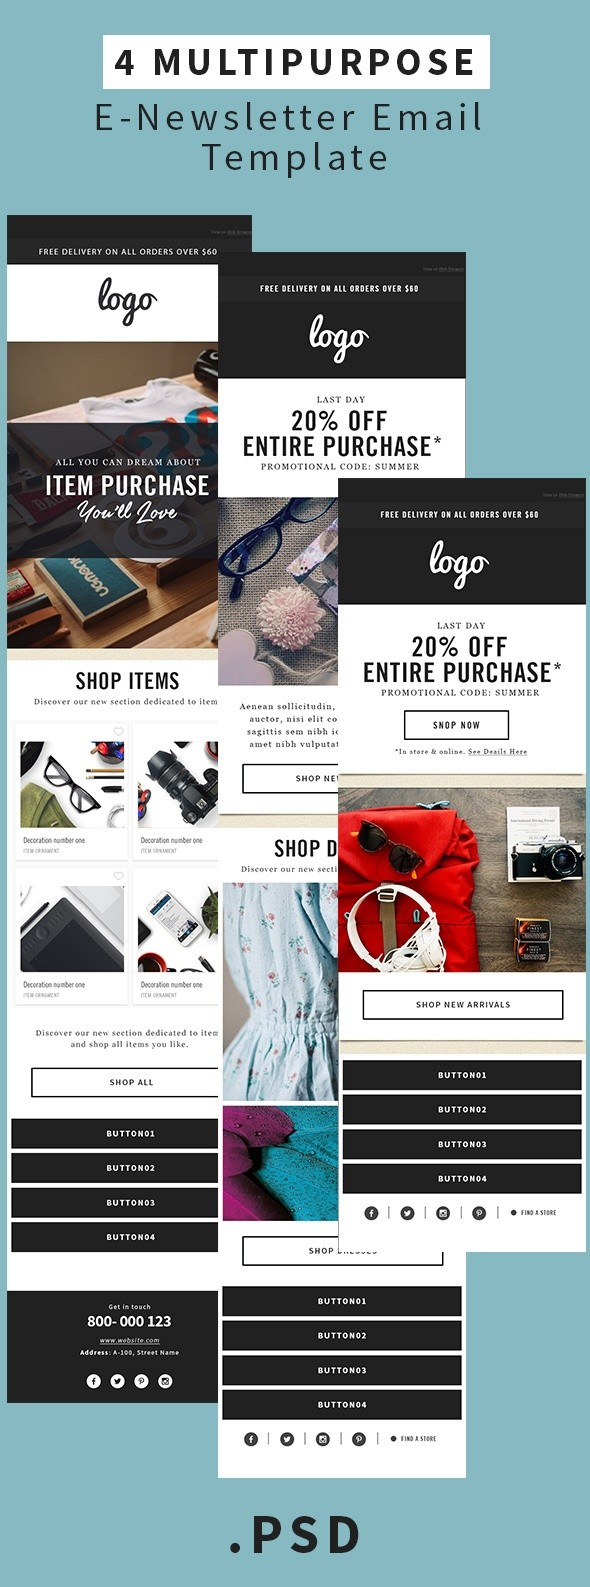 Multipurpose E-Newsletter Email Template Minimalis